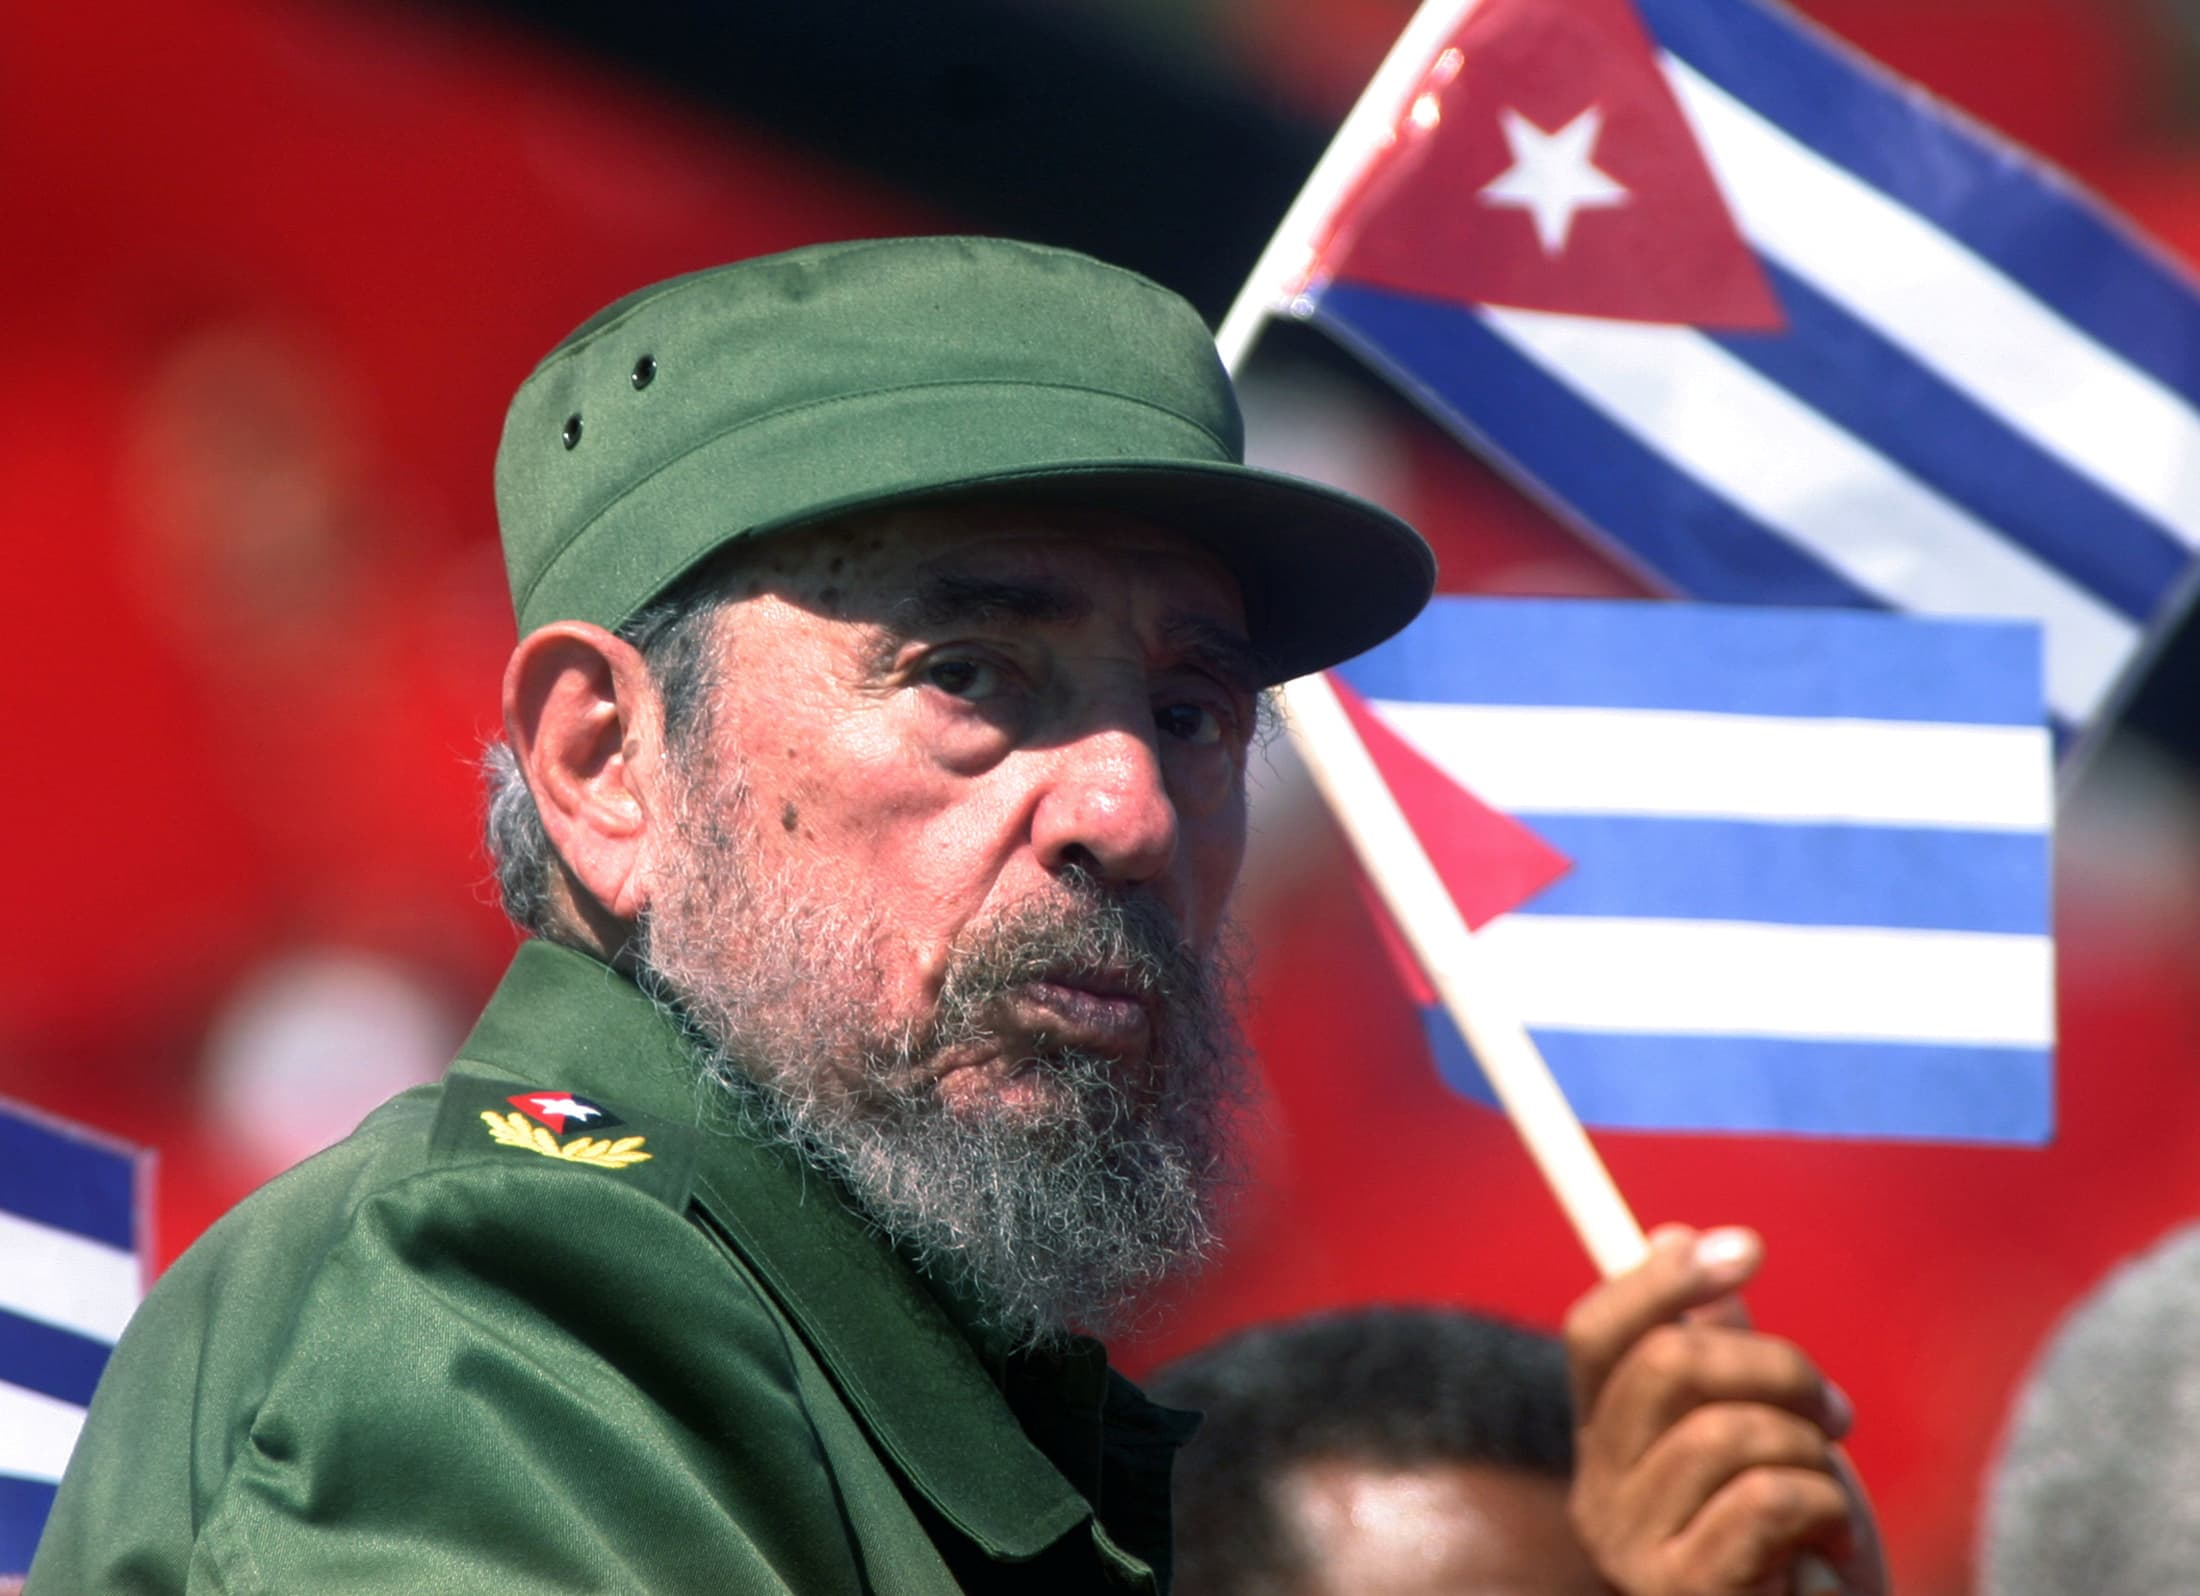 Then Cuban President Fidel Castro glances over his shoulder during the May Day commemoration in 2004, REUTERS/Rafael Perez/Files